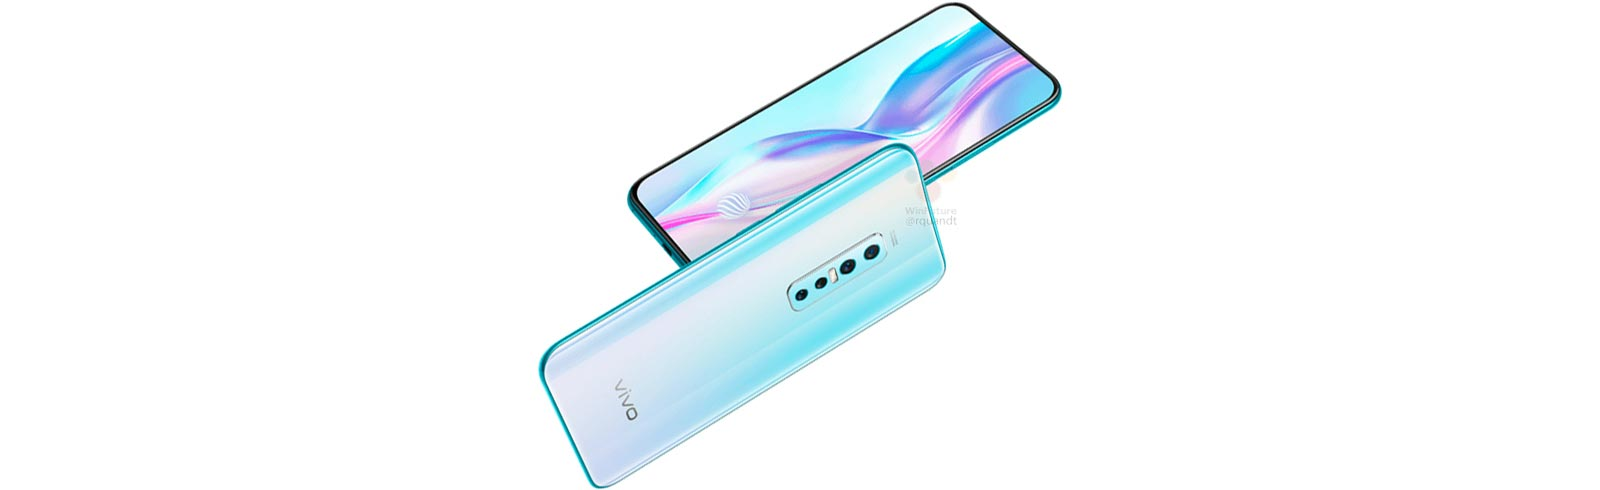 Vivo V17 Pro with two front pop-up cameras photos and specifications leak